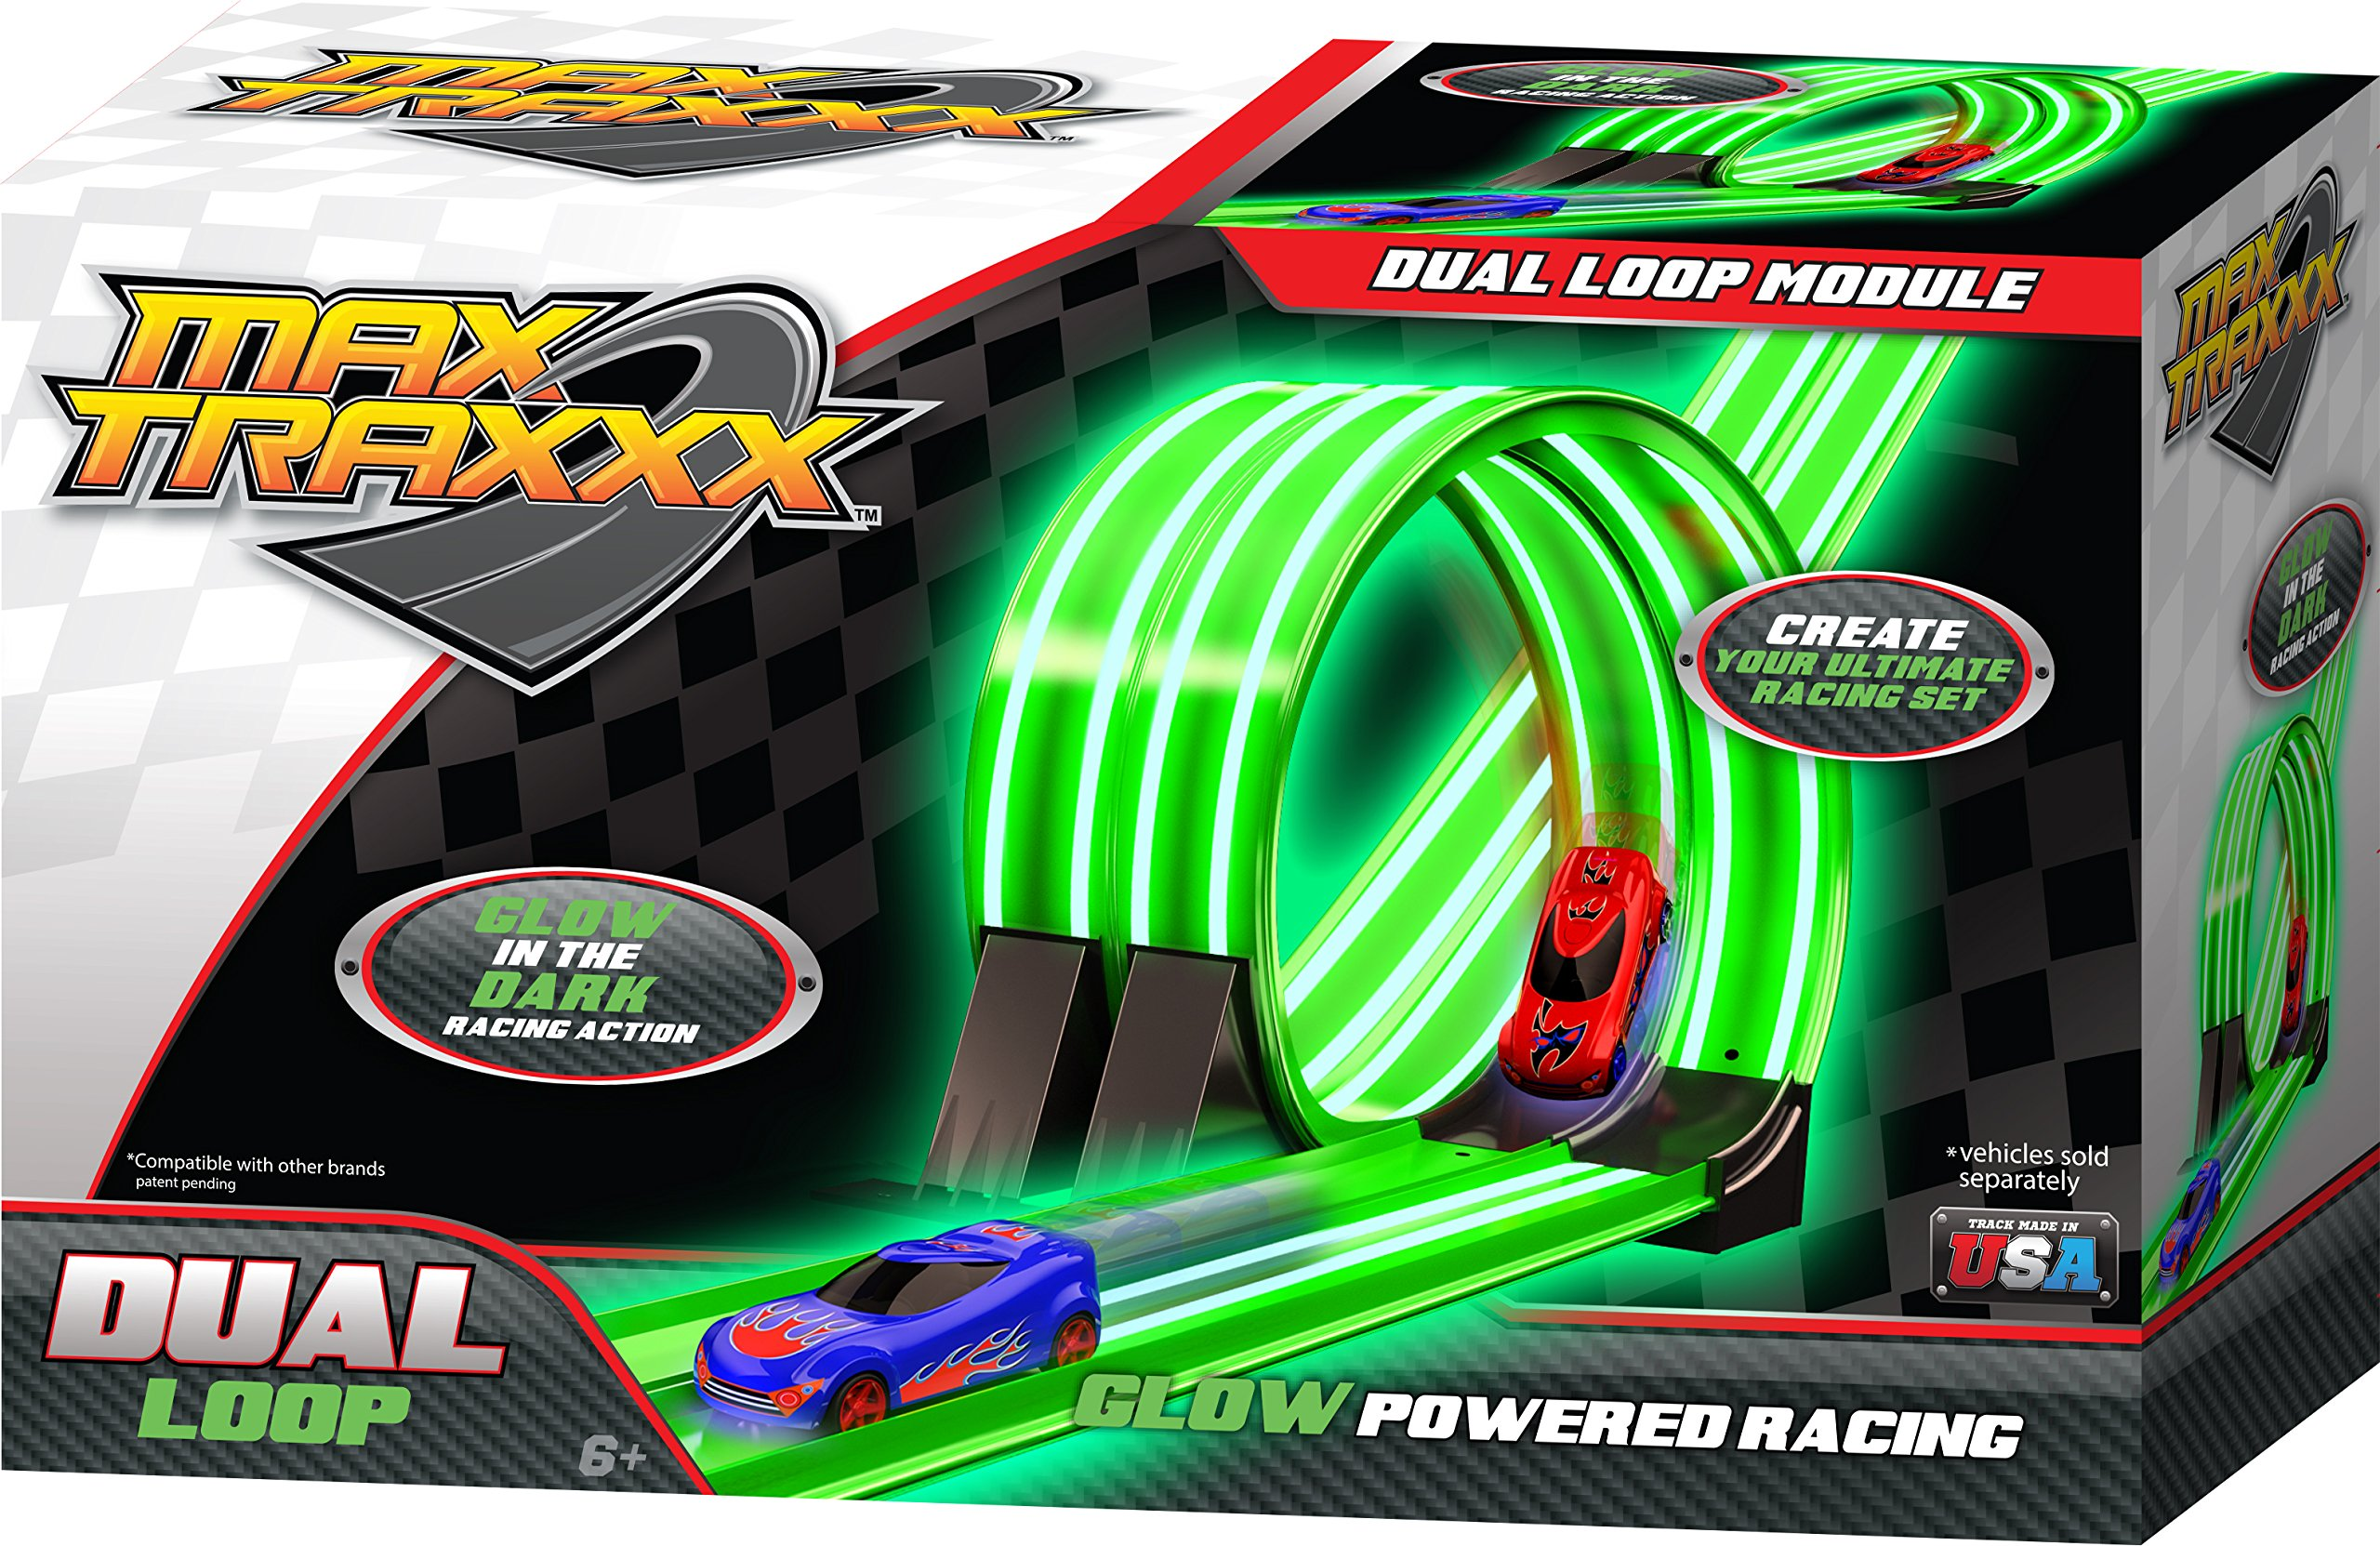 Max Traxxx Tracer Racers Dual Loop Add On Module for Gravity Drive and Remote Control 1:64 Scale Sets